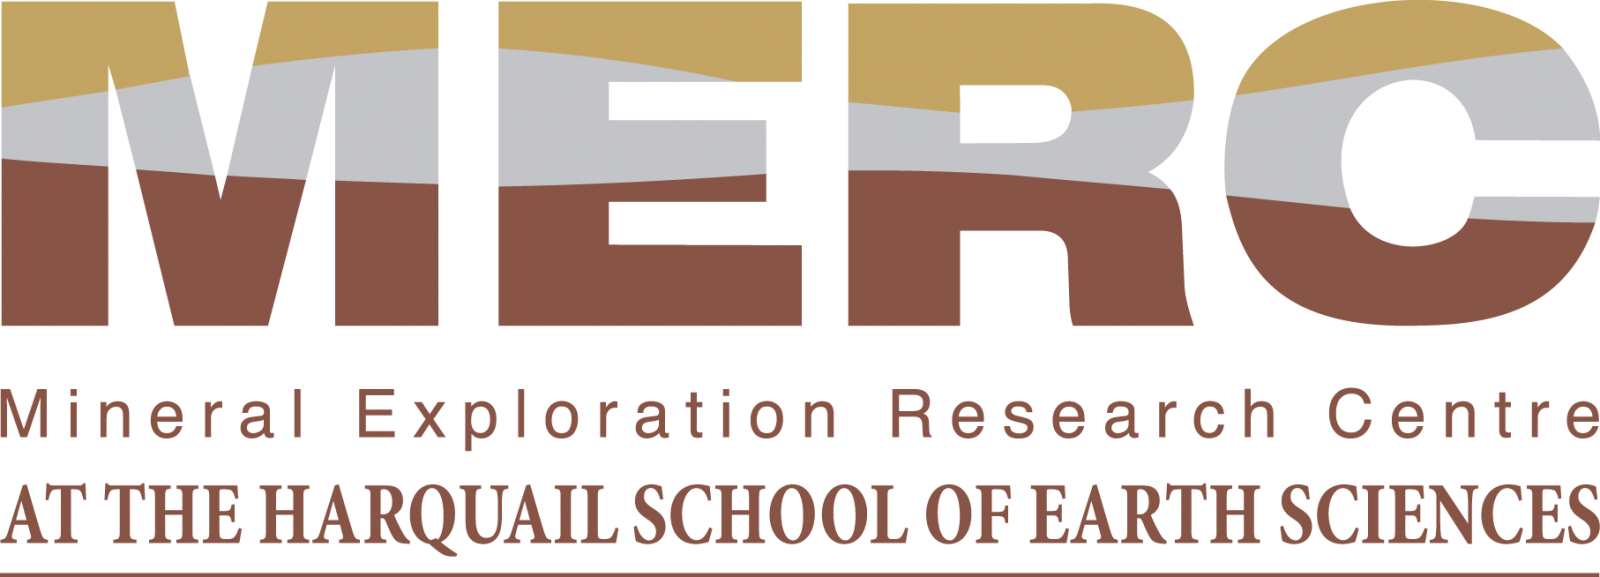 Mineral Exploration Research Centre logo